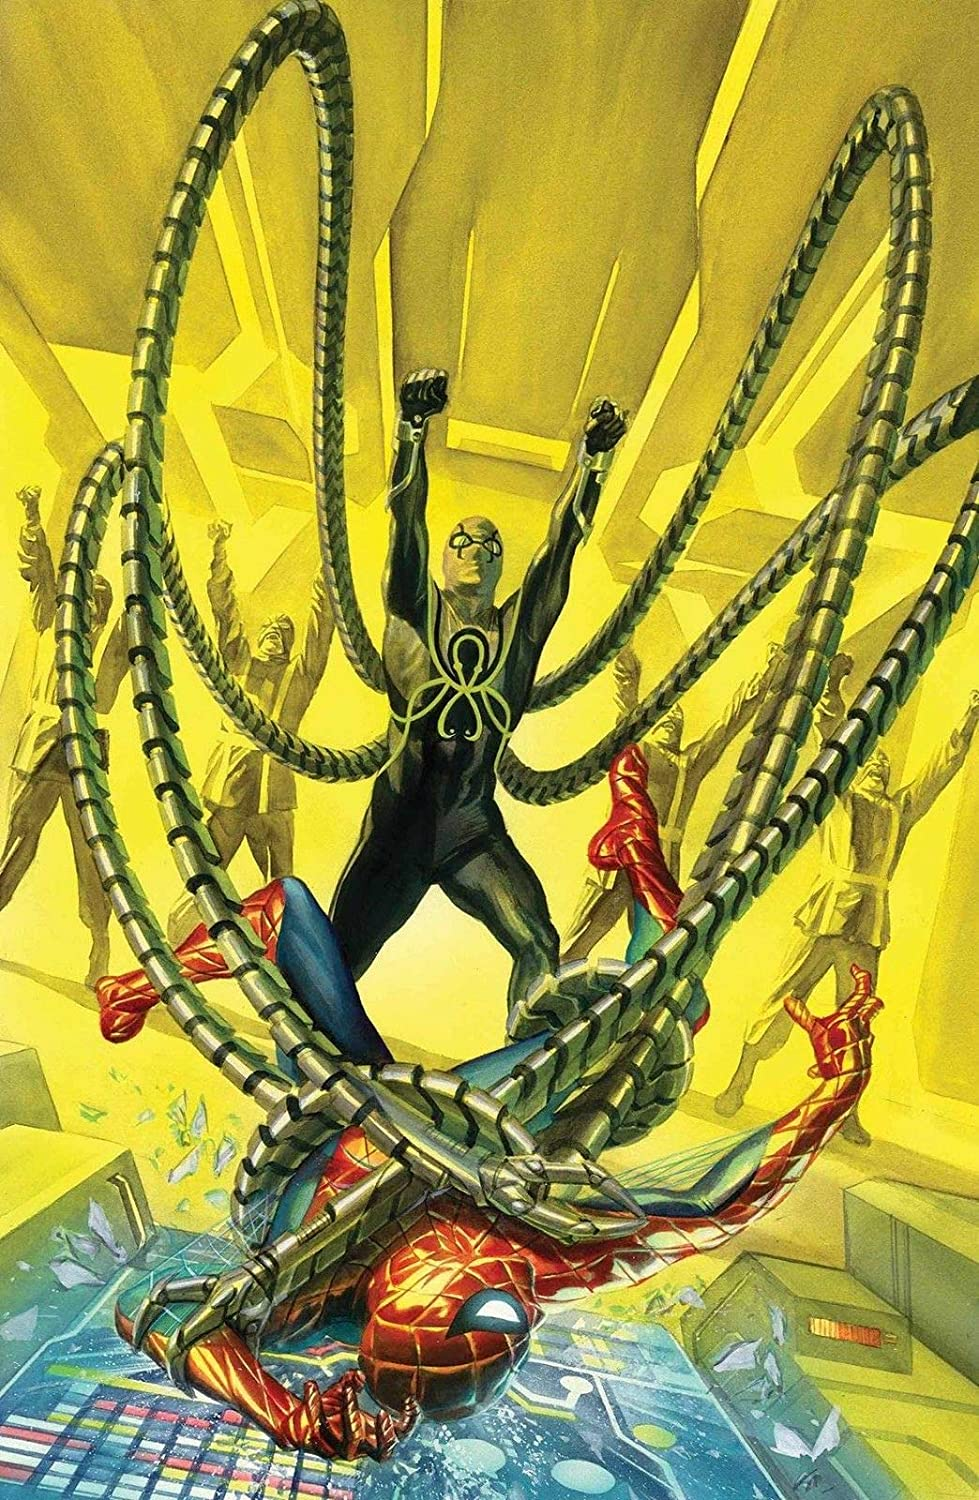 Amazing Spider-Man #29 Poster by Alex Ross (24' x 36') Rolled/New!